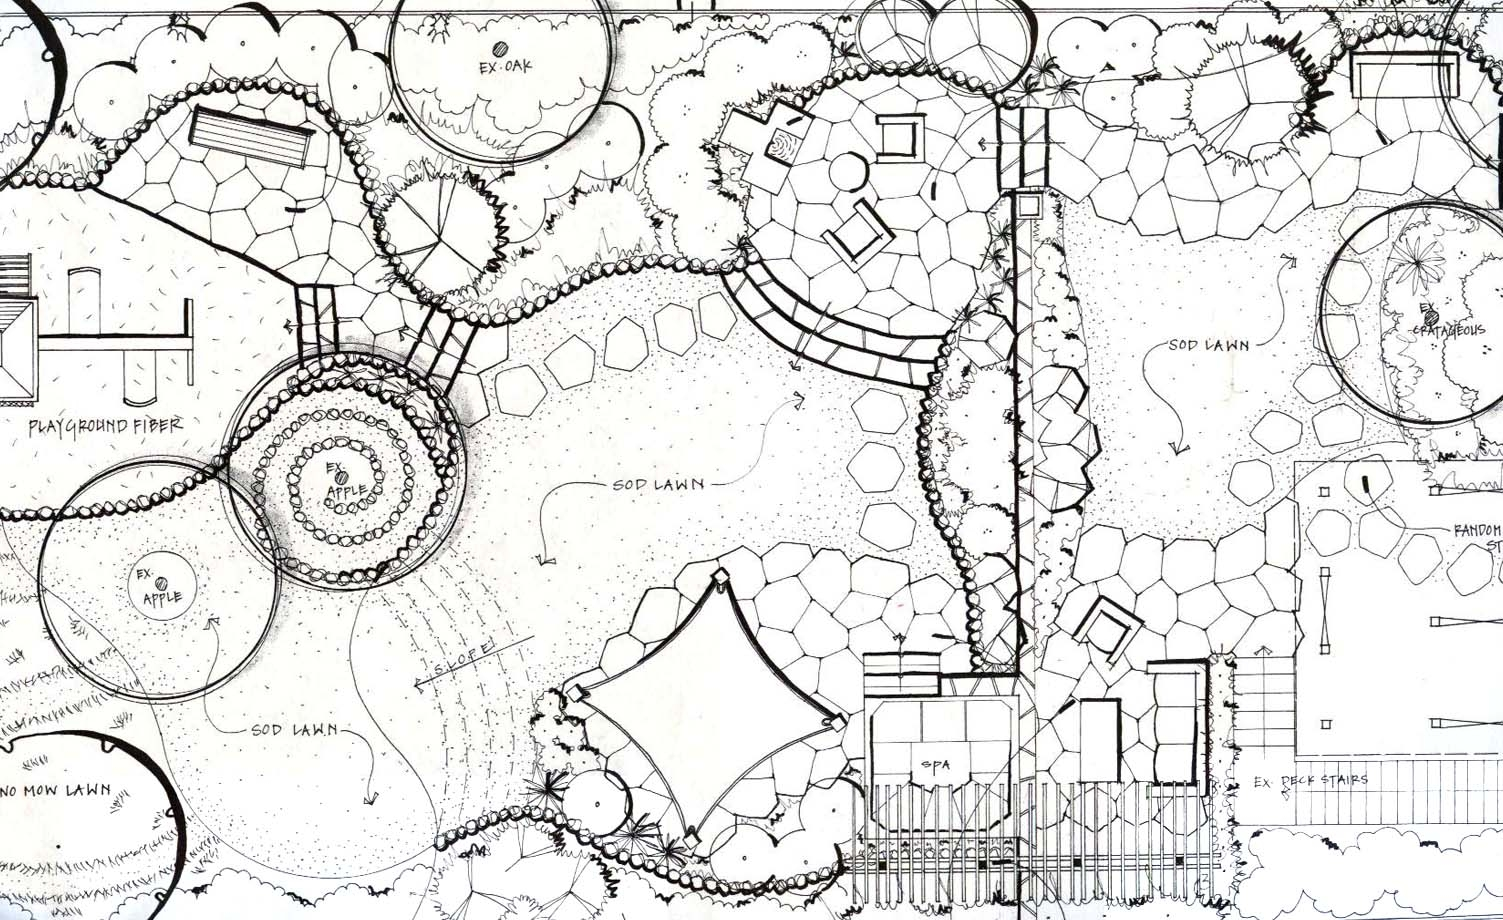 Garden Design Garden Design With Landscaping Plans U Landscape - Landscape design plans